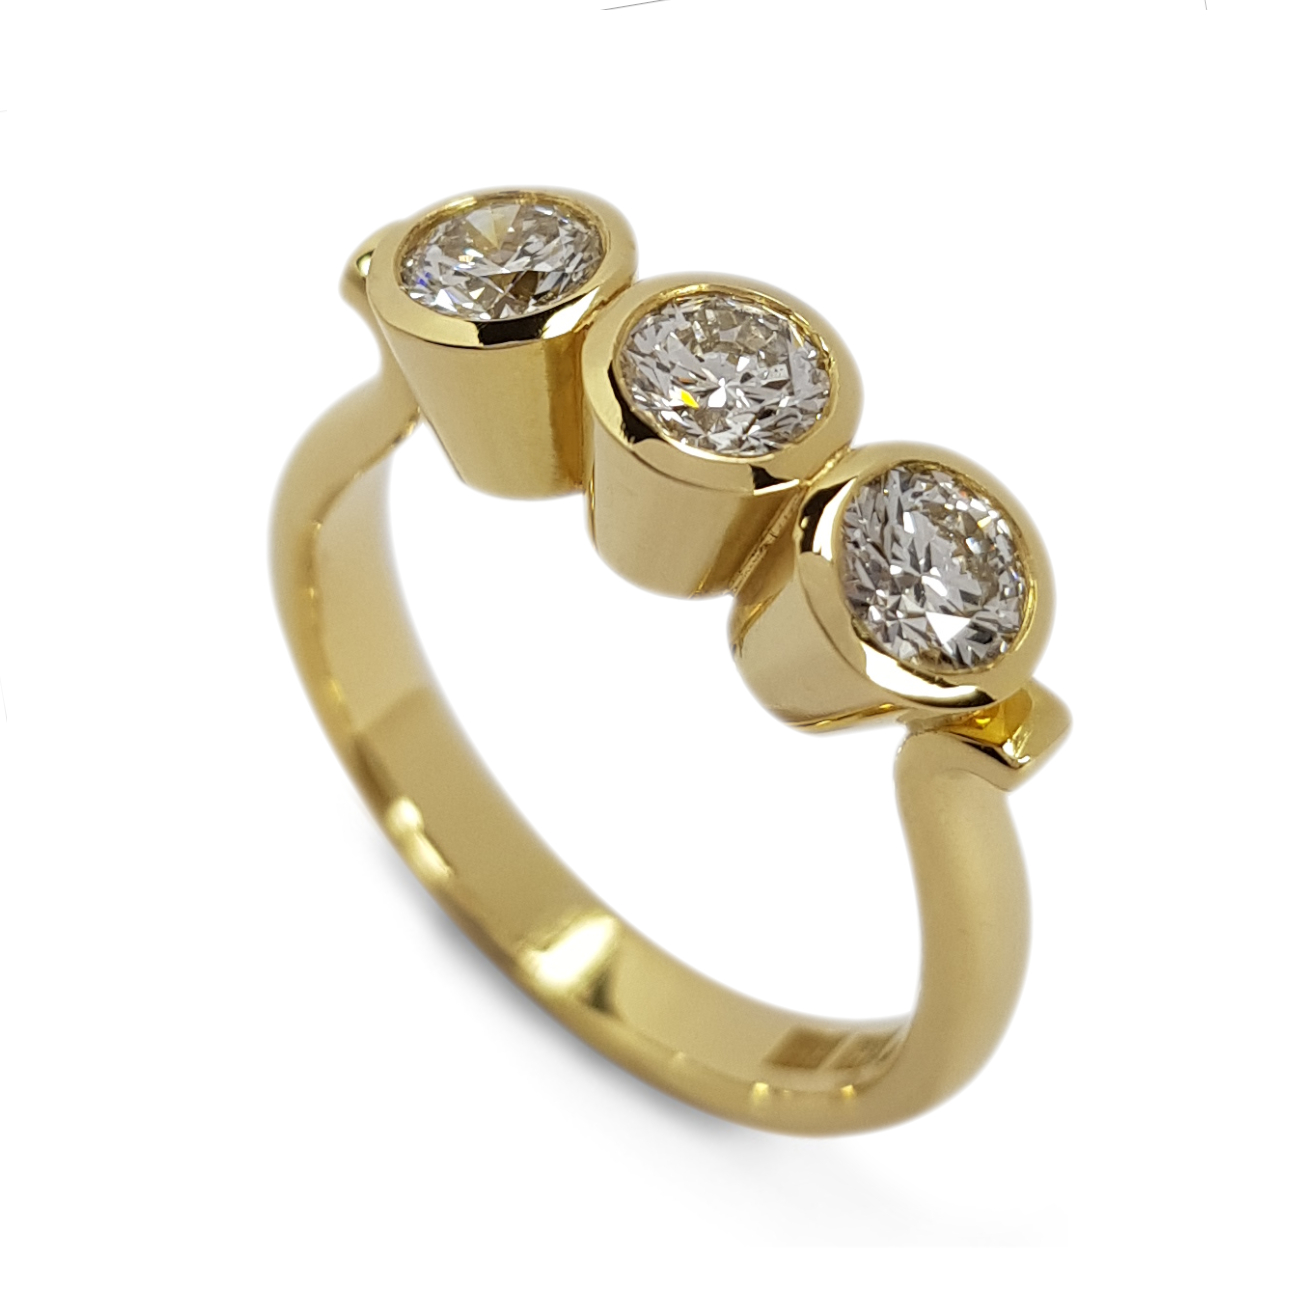 Rudolf Heltzel 3 stone bezel set diamond engagement ring made in 18ct gold, For those whose actions speak louder than words.